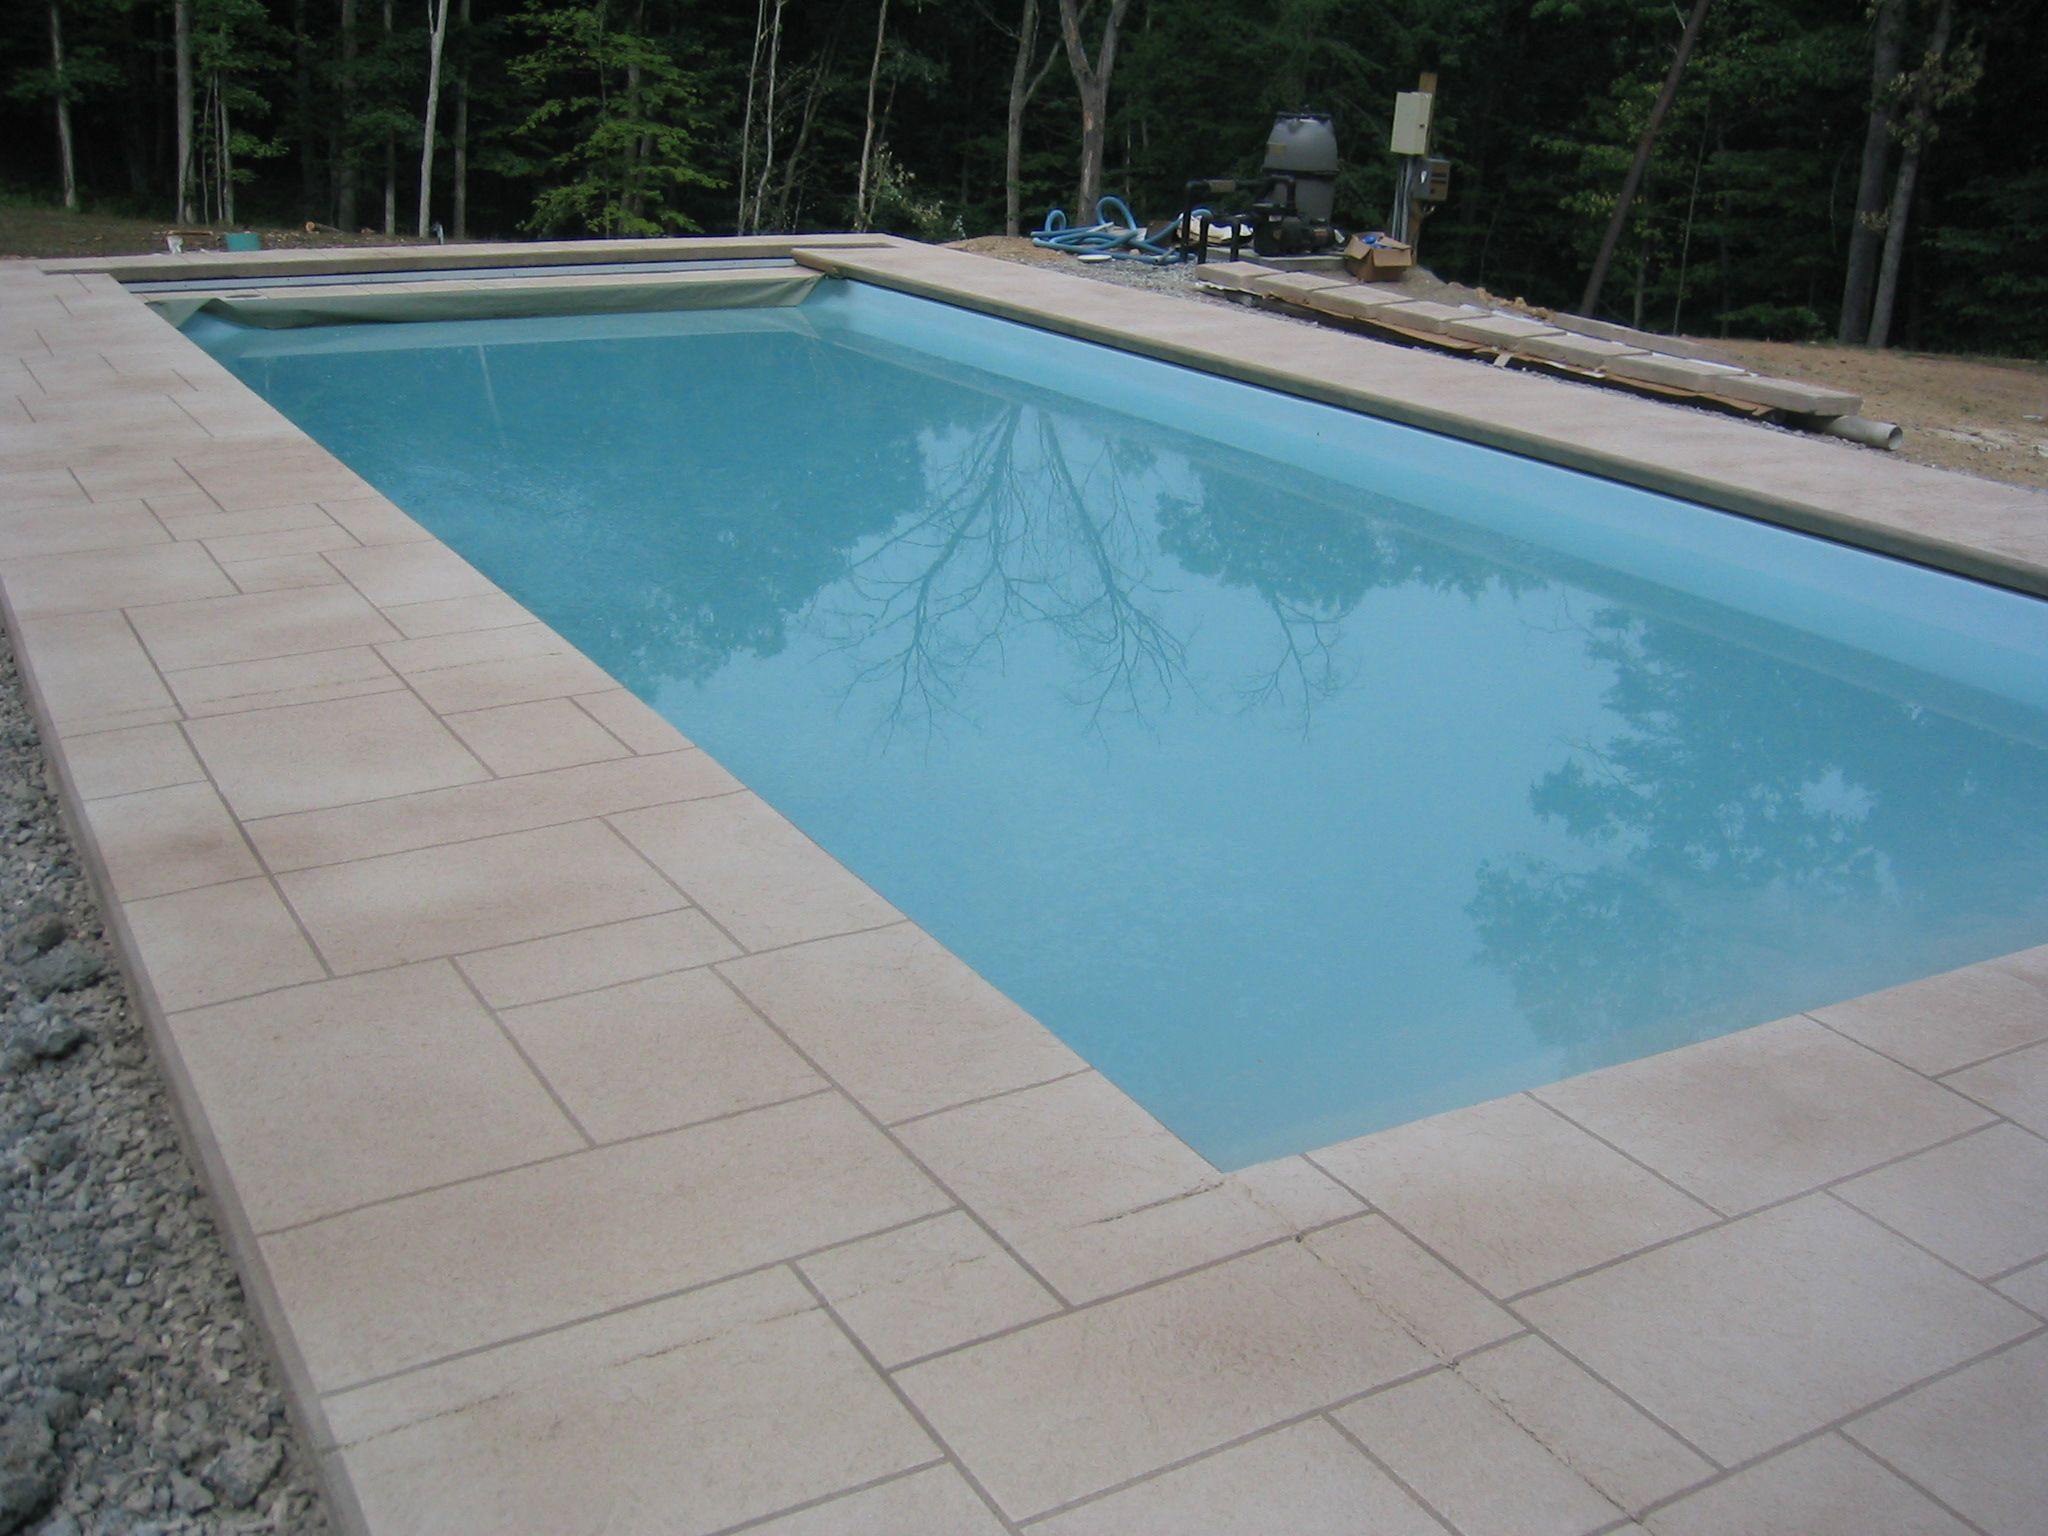 Stamped Concrete Is An Ideal Pool Deck Surface Combining The Attributes Of Beauty Durability